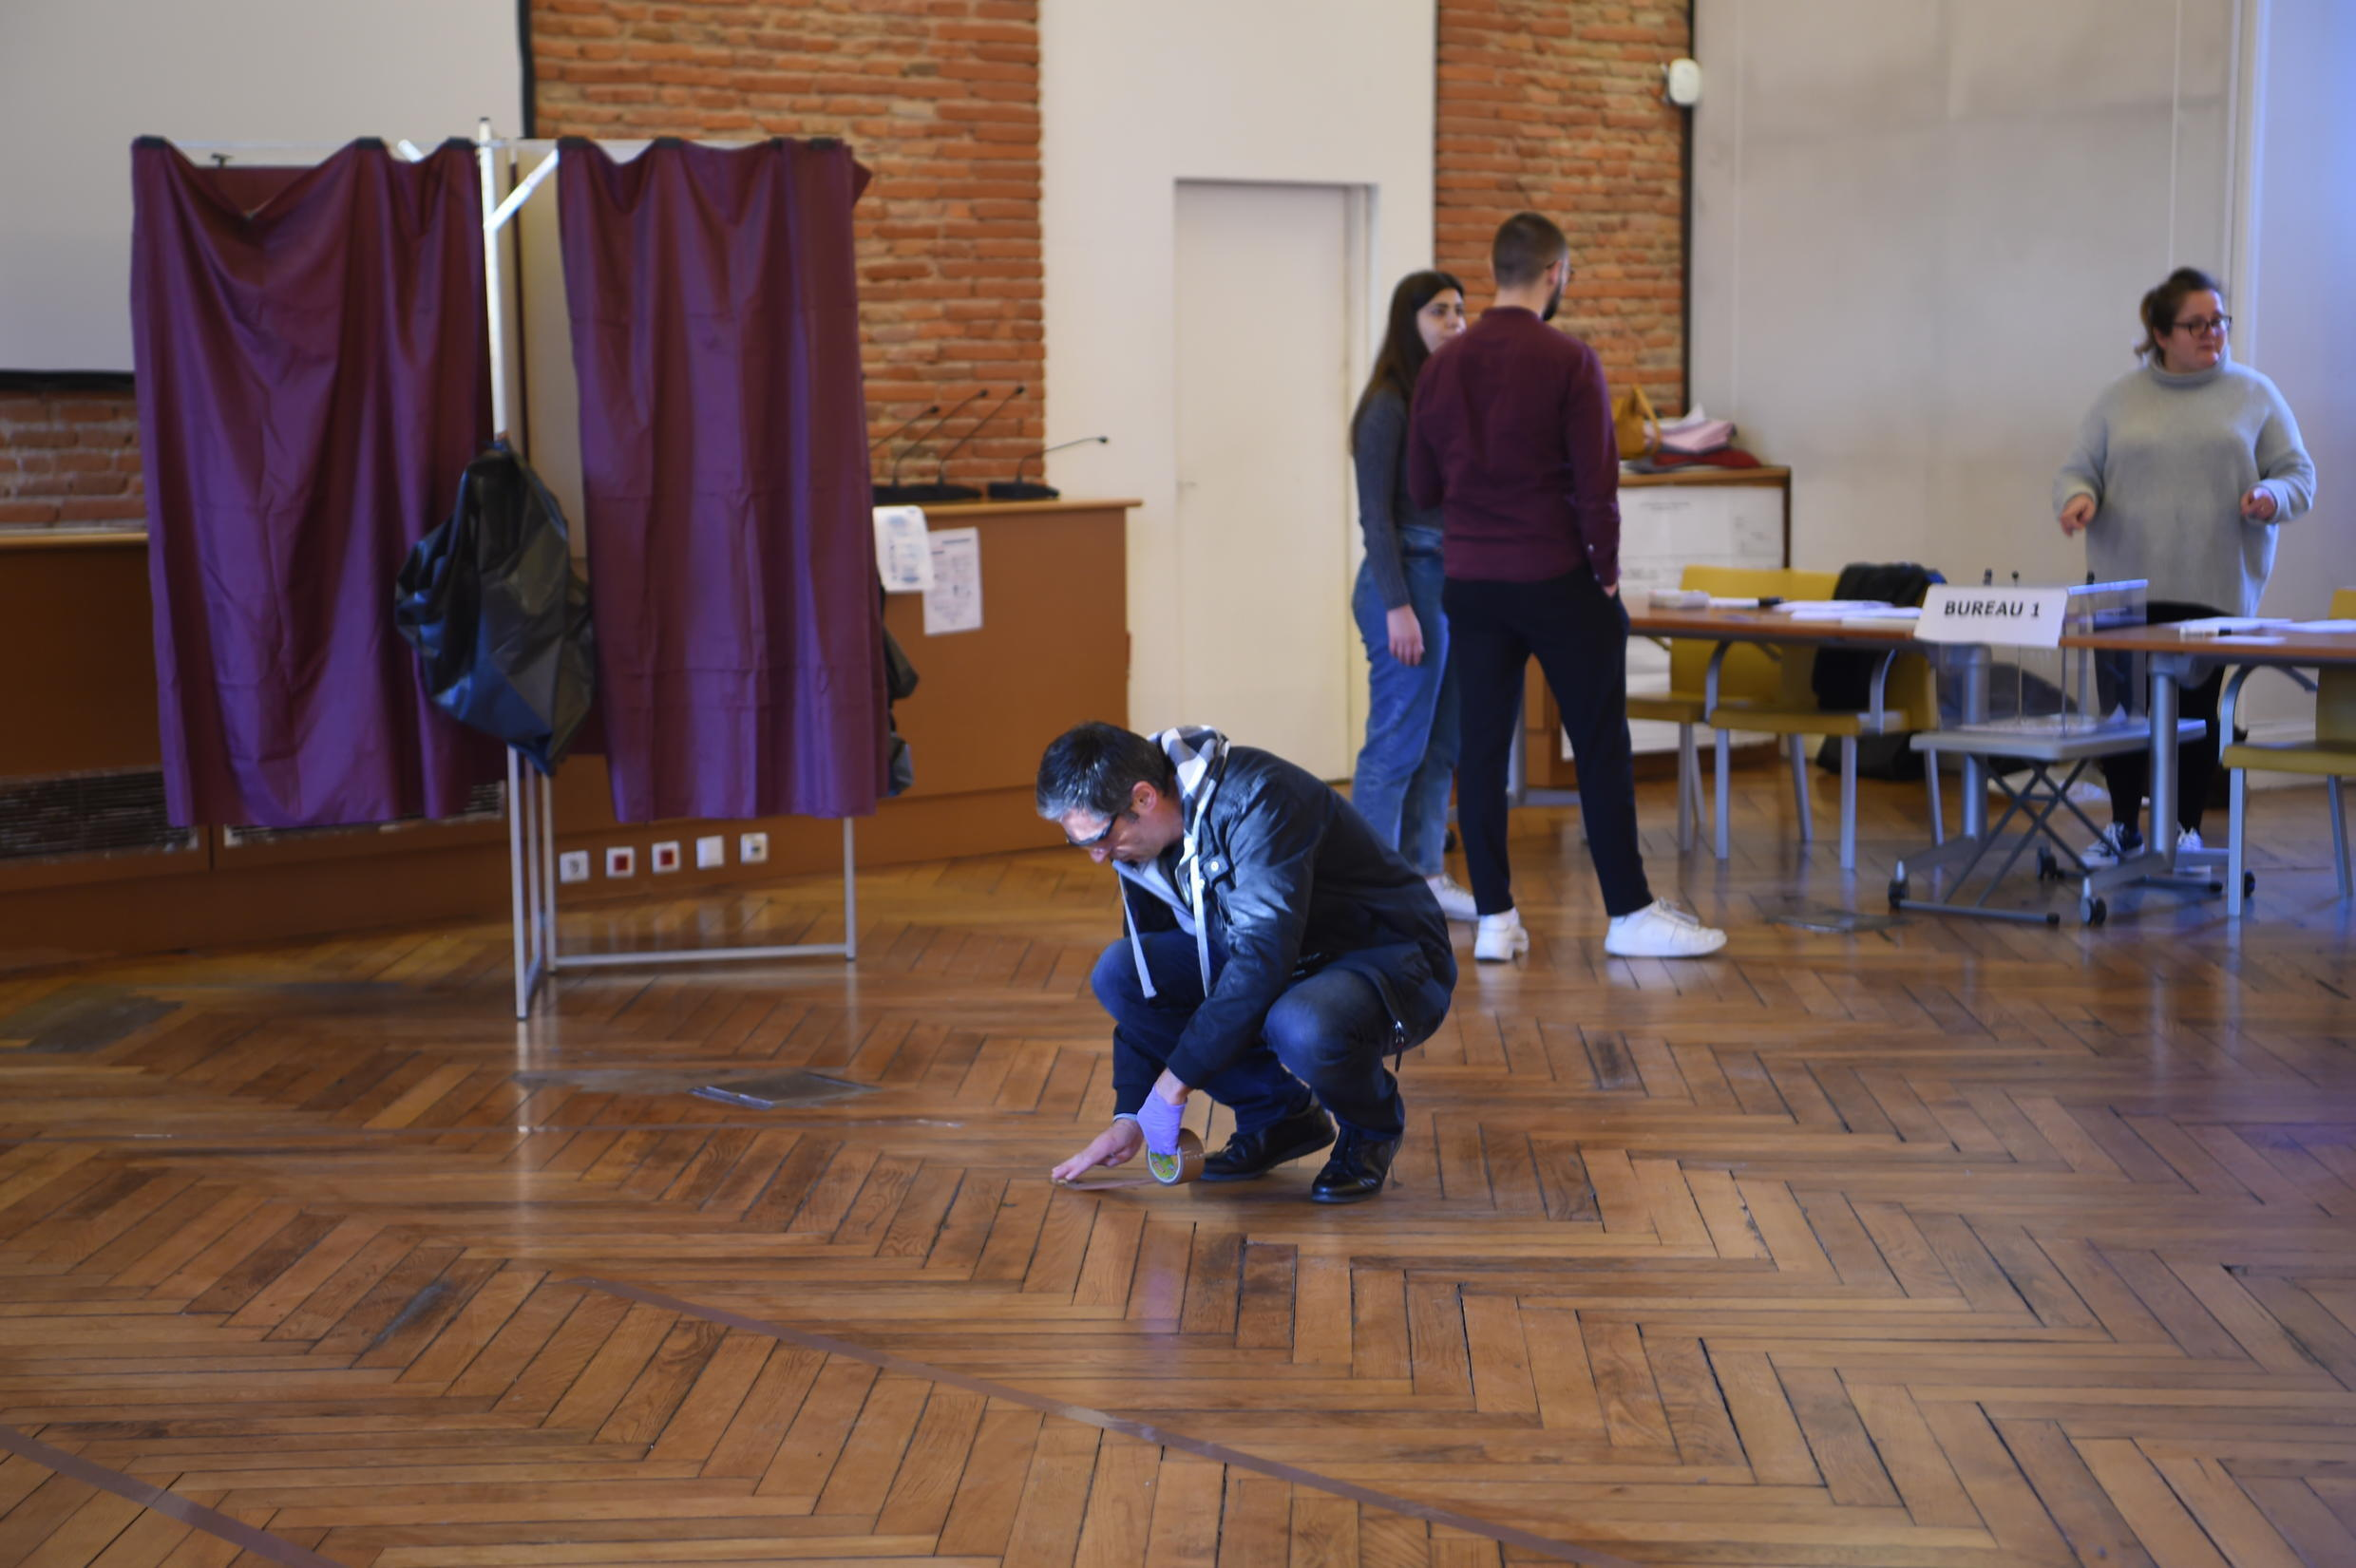 An electoral official marks the floor to encourage people to keep their distance while voting in municipal elections in Toulouse.